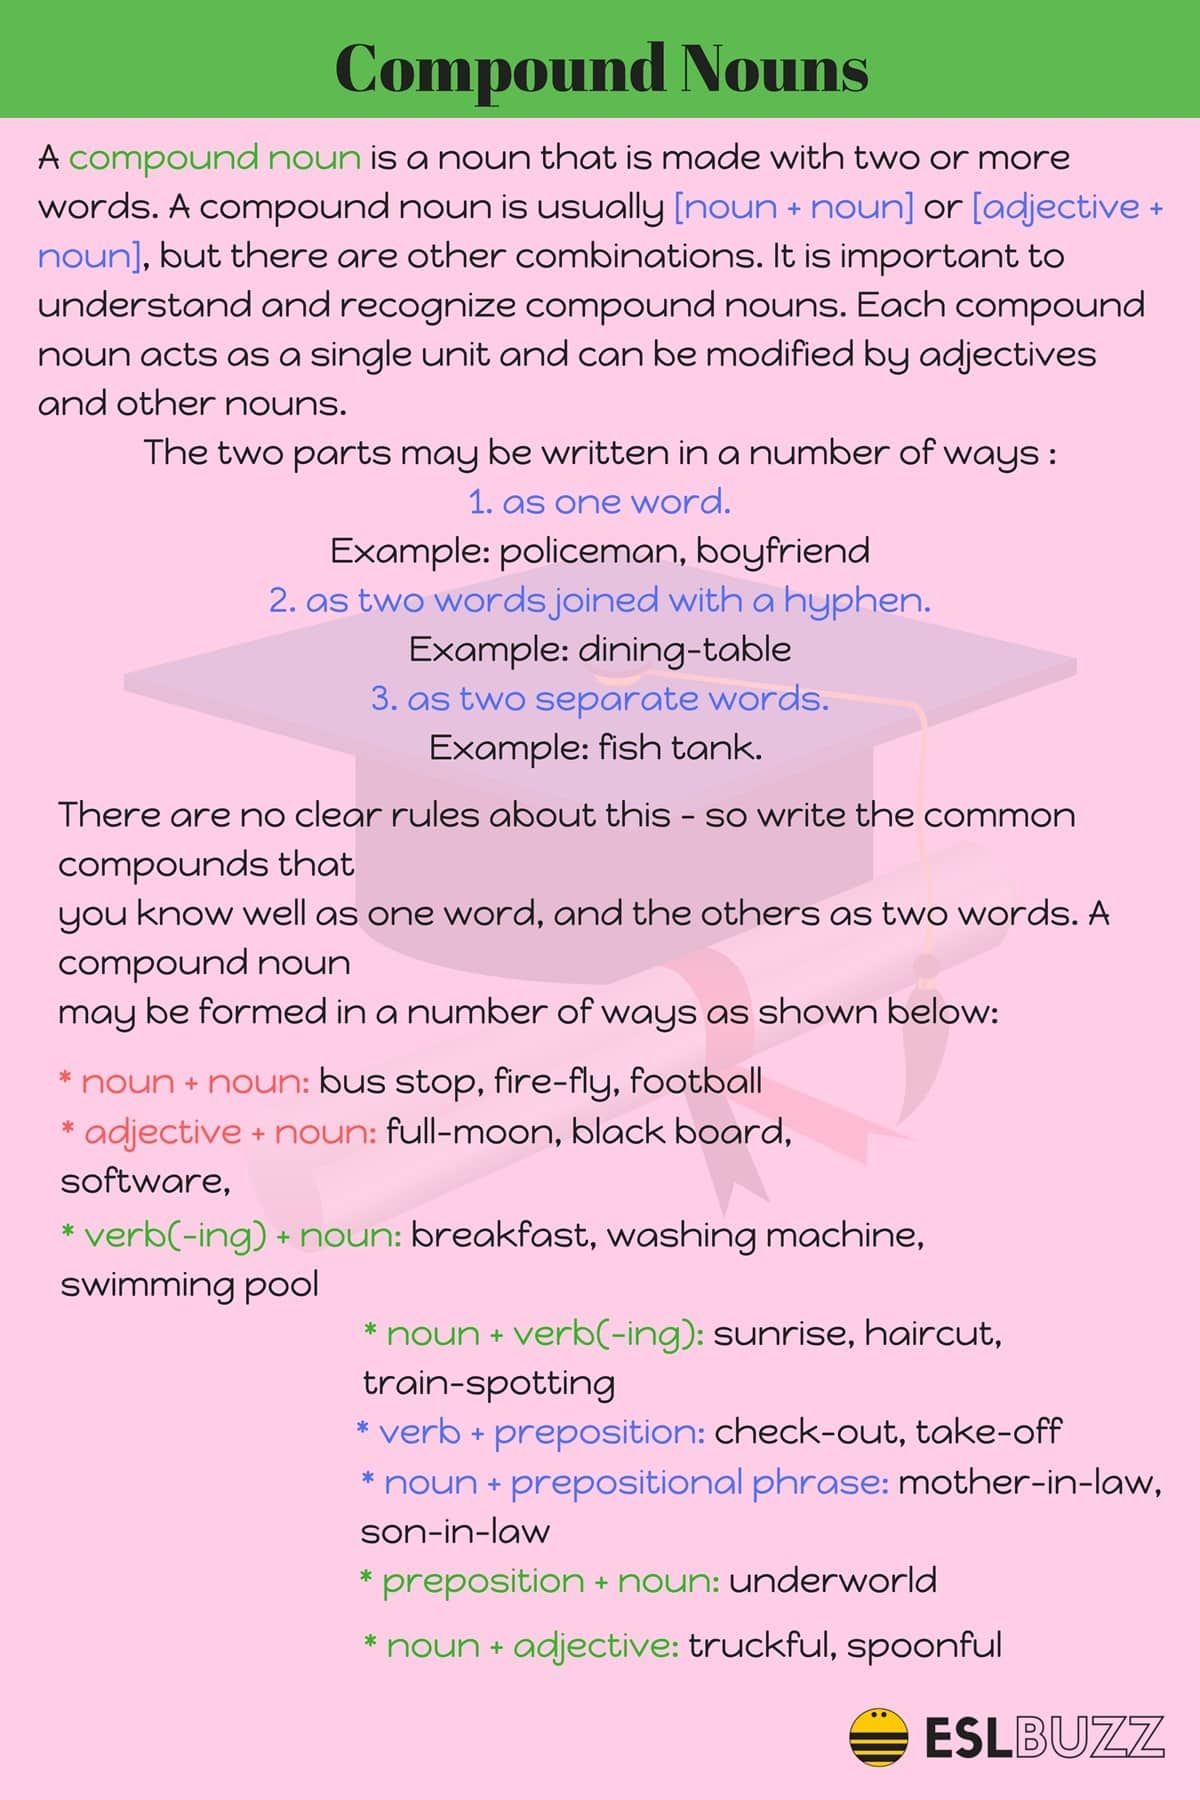 English Grammar Compound Nouns With Images